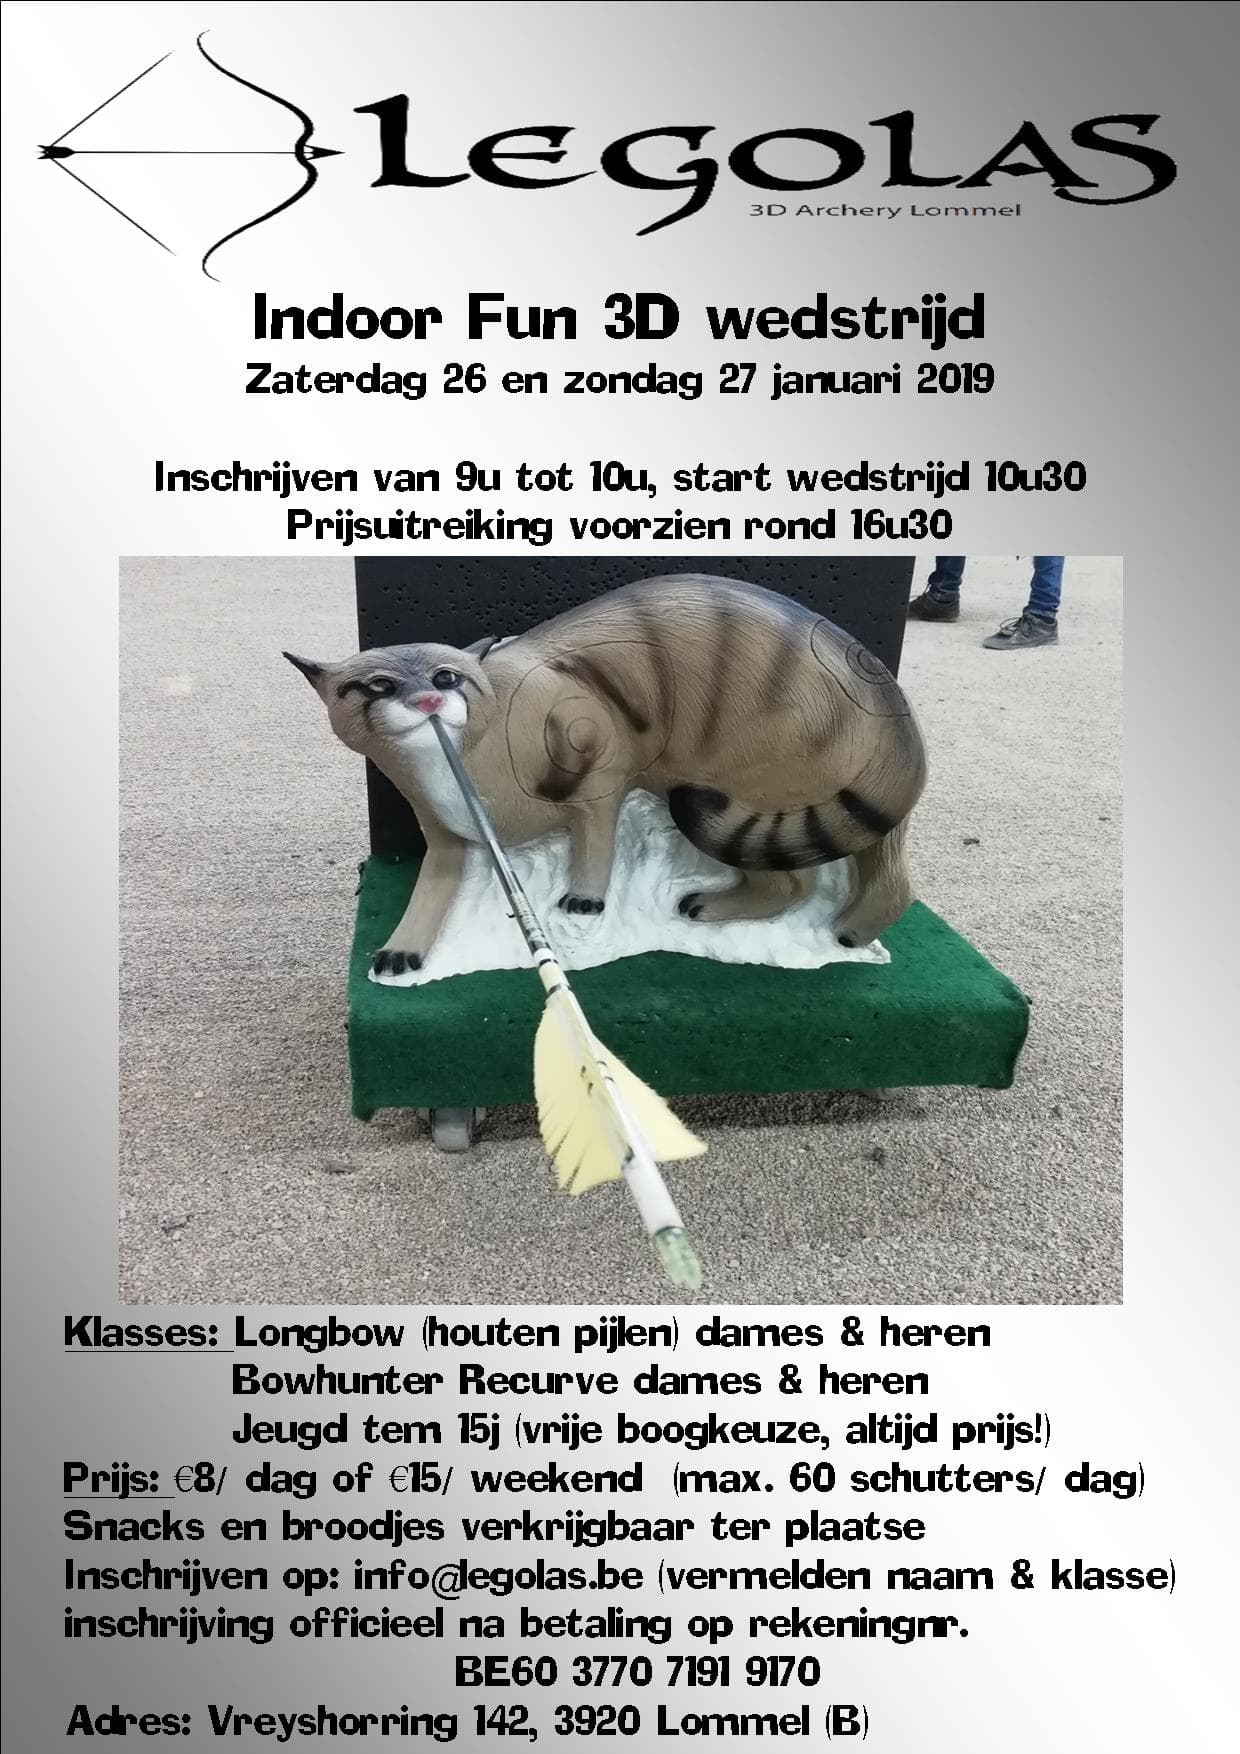 uitnodiging-Indoor-Fun-3D